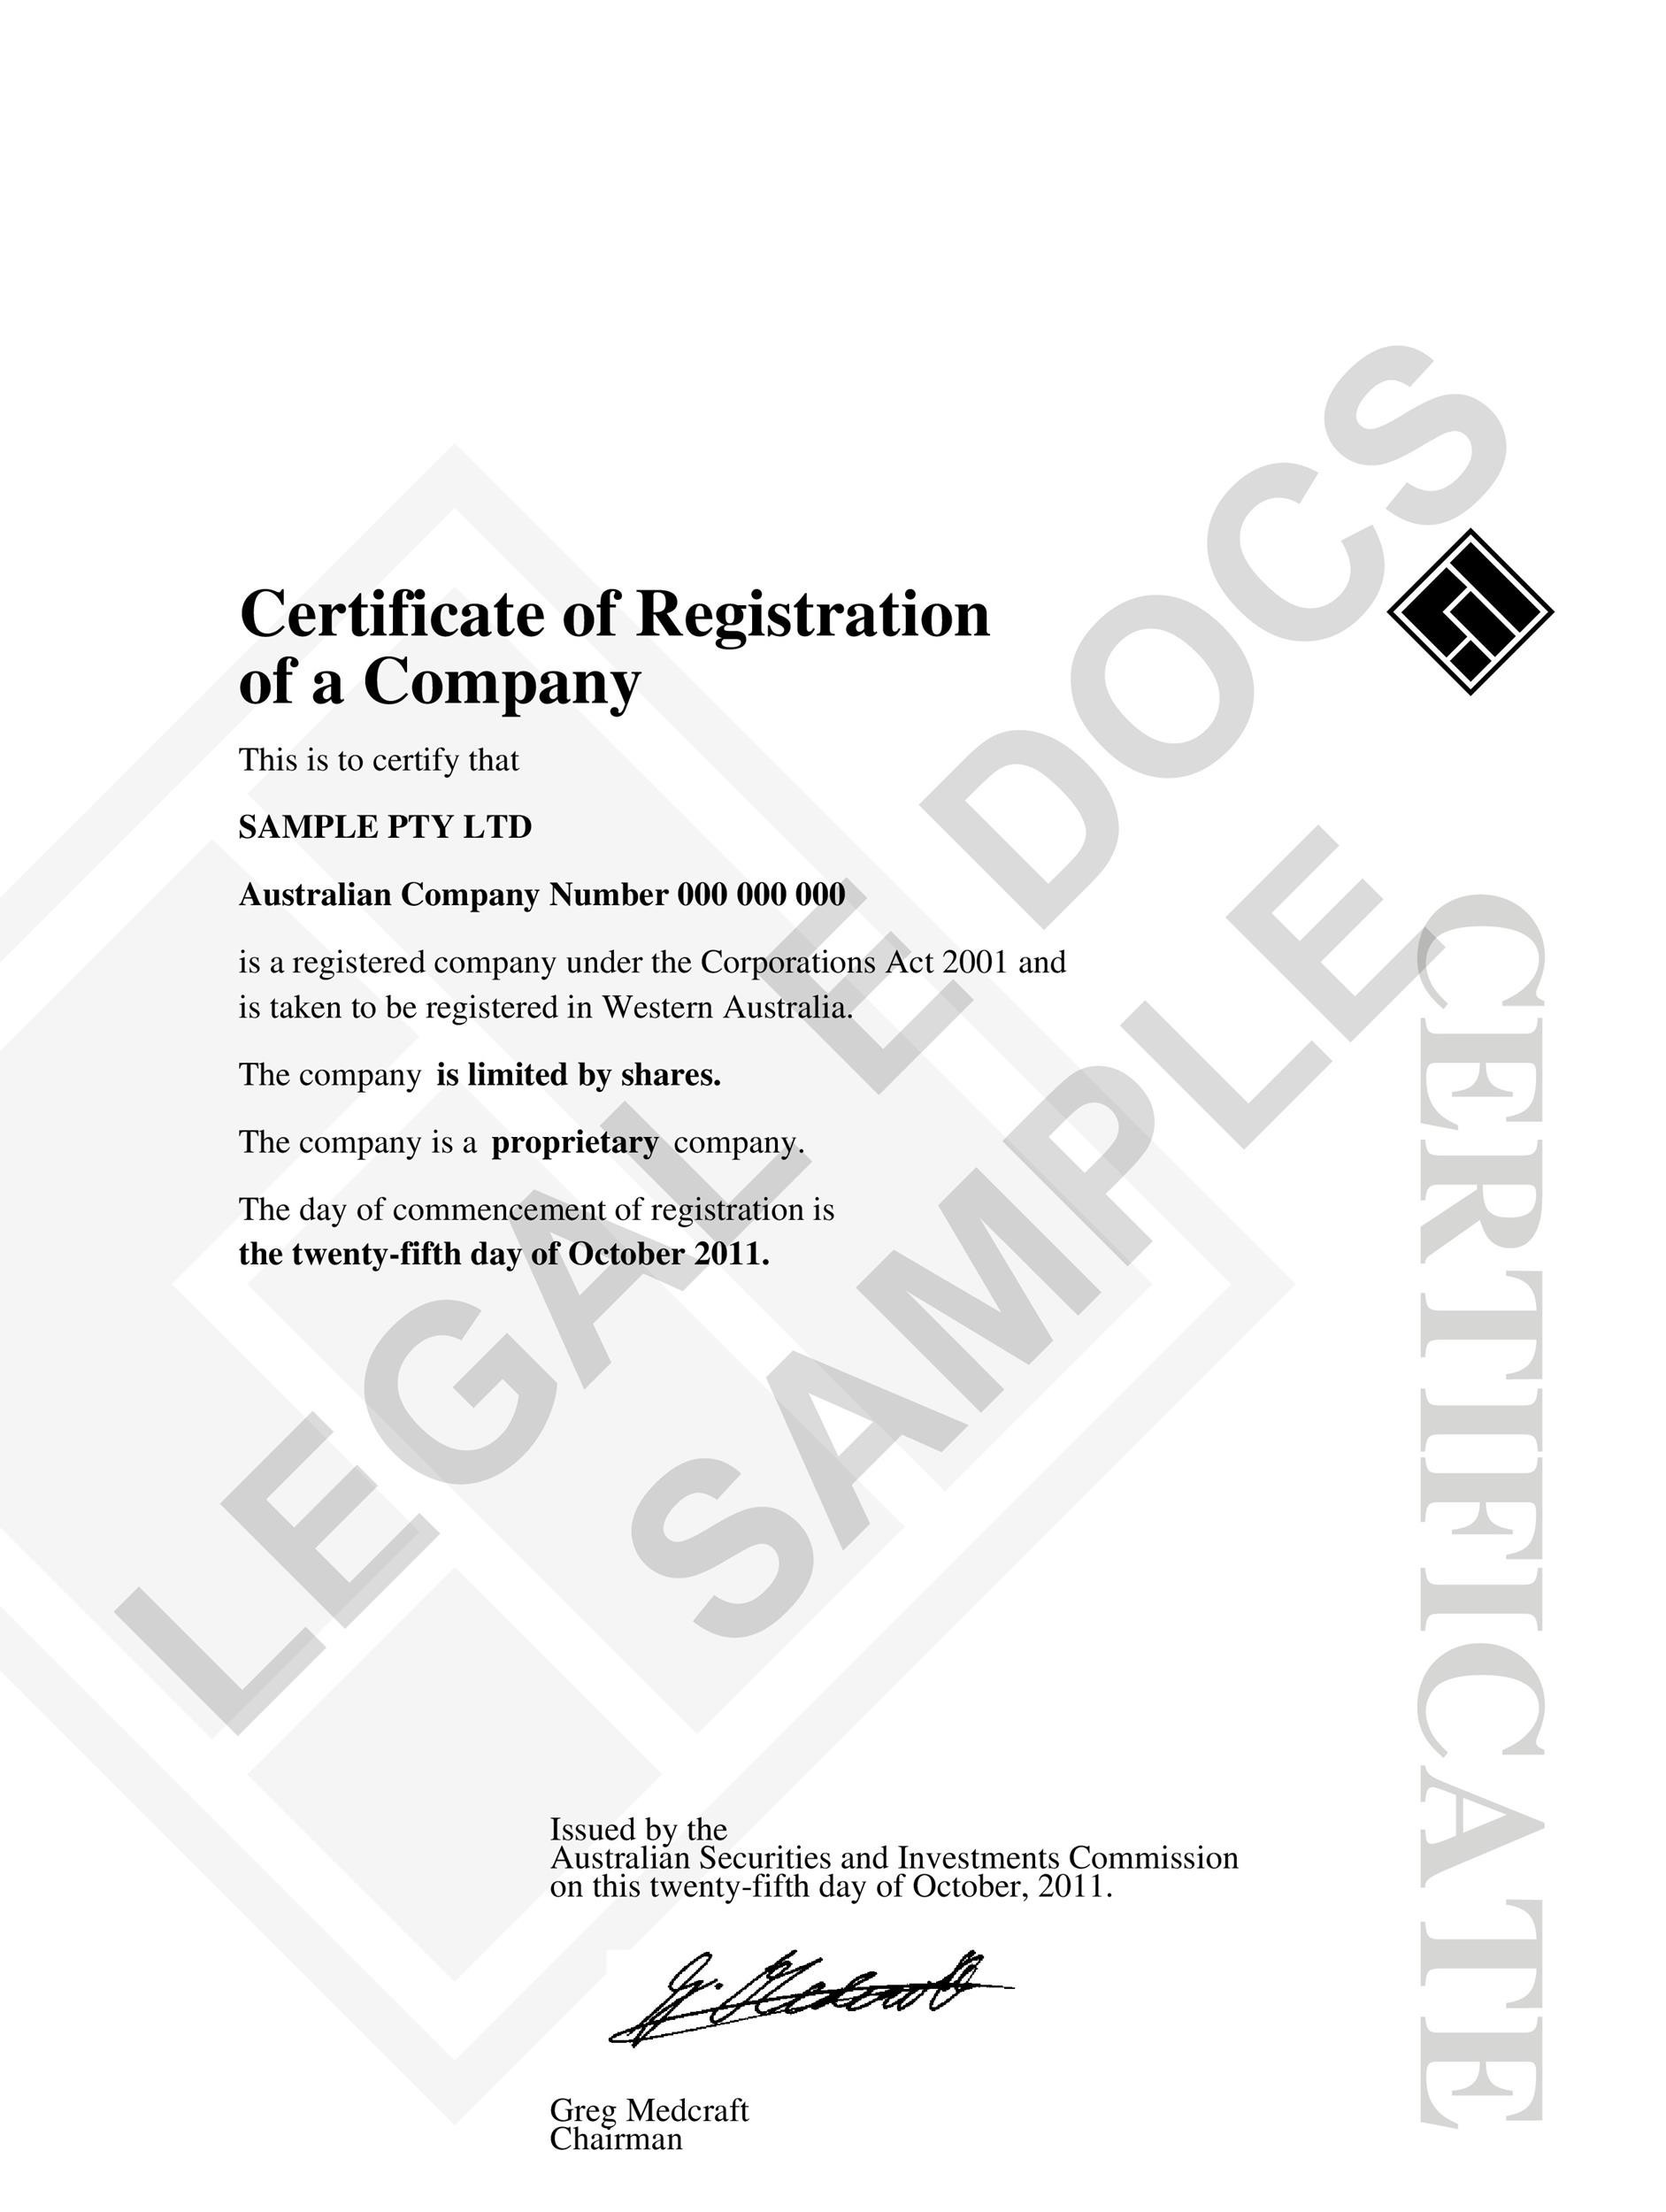 40 free stock certificate templates word pdf With share certificate template australia